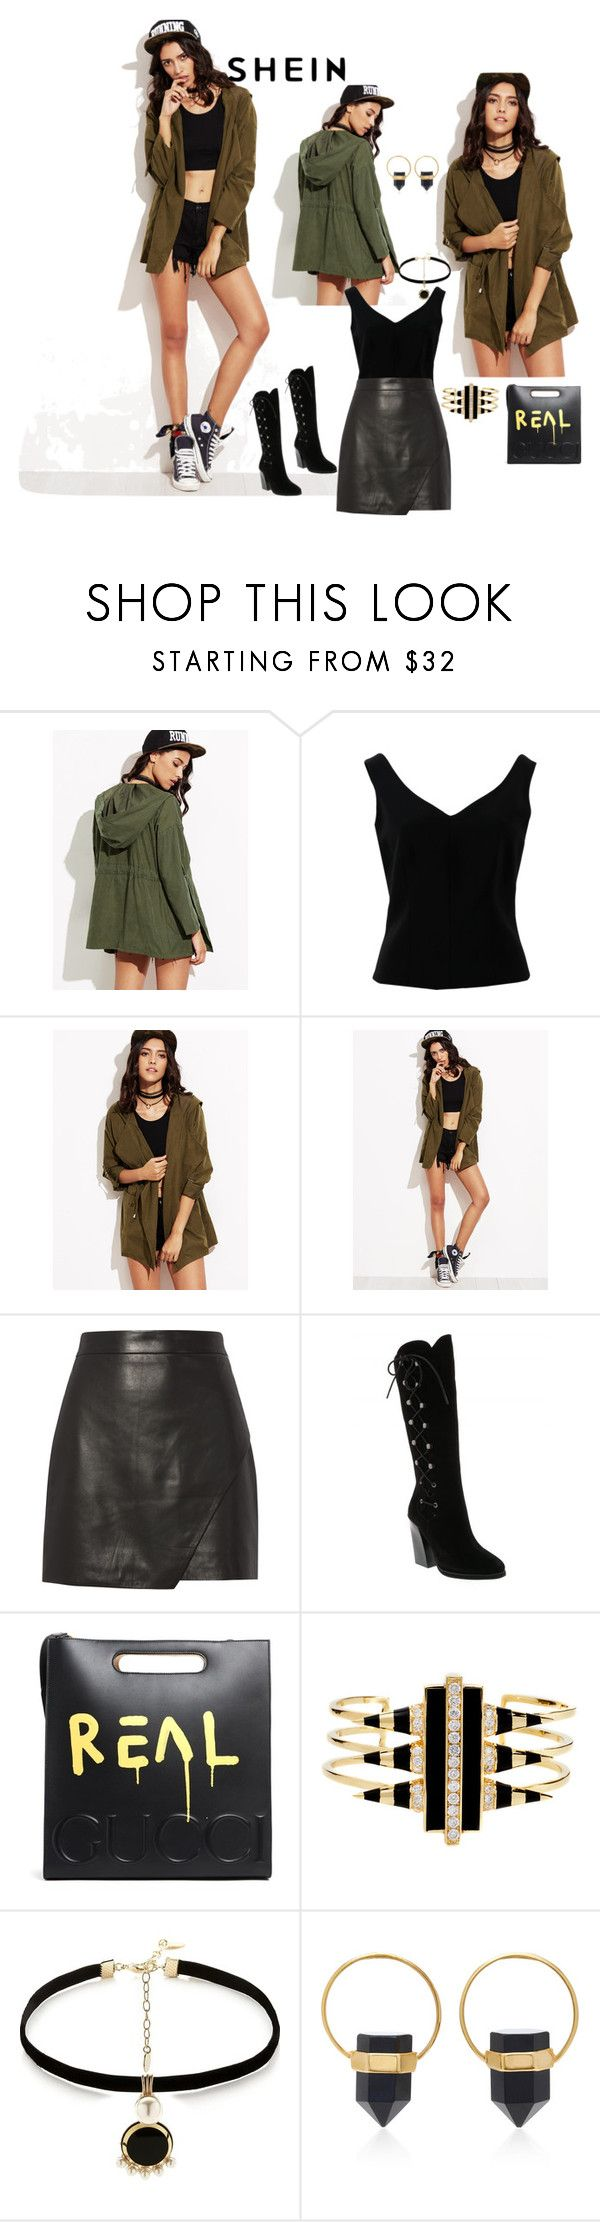 """Untitled #791"" by skatiemae ❤ liked on Polyvore featuring ADAM, Michelle Mason, Gucci, Noir Jewelry, Anton Heunis and Isabel Marant"